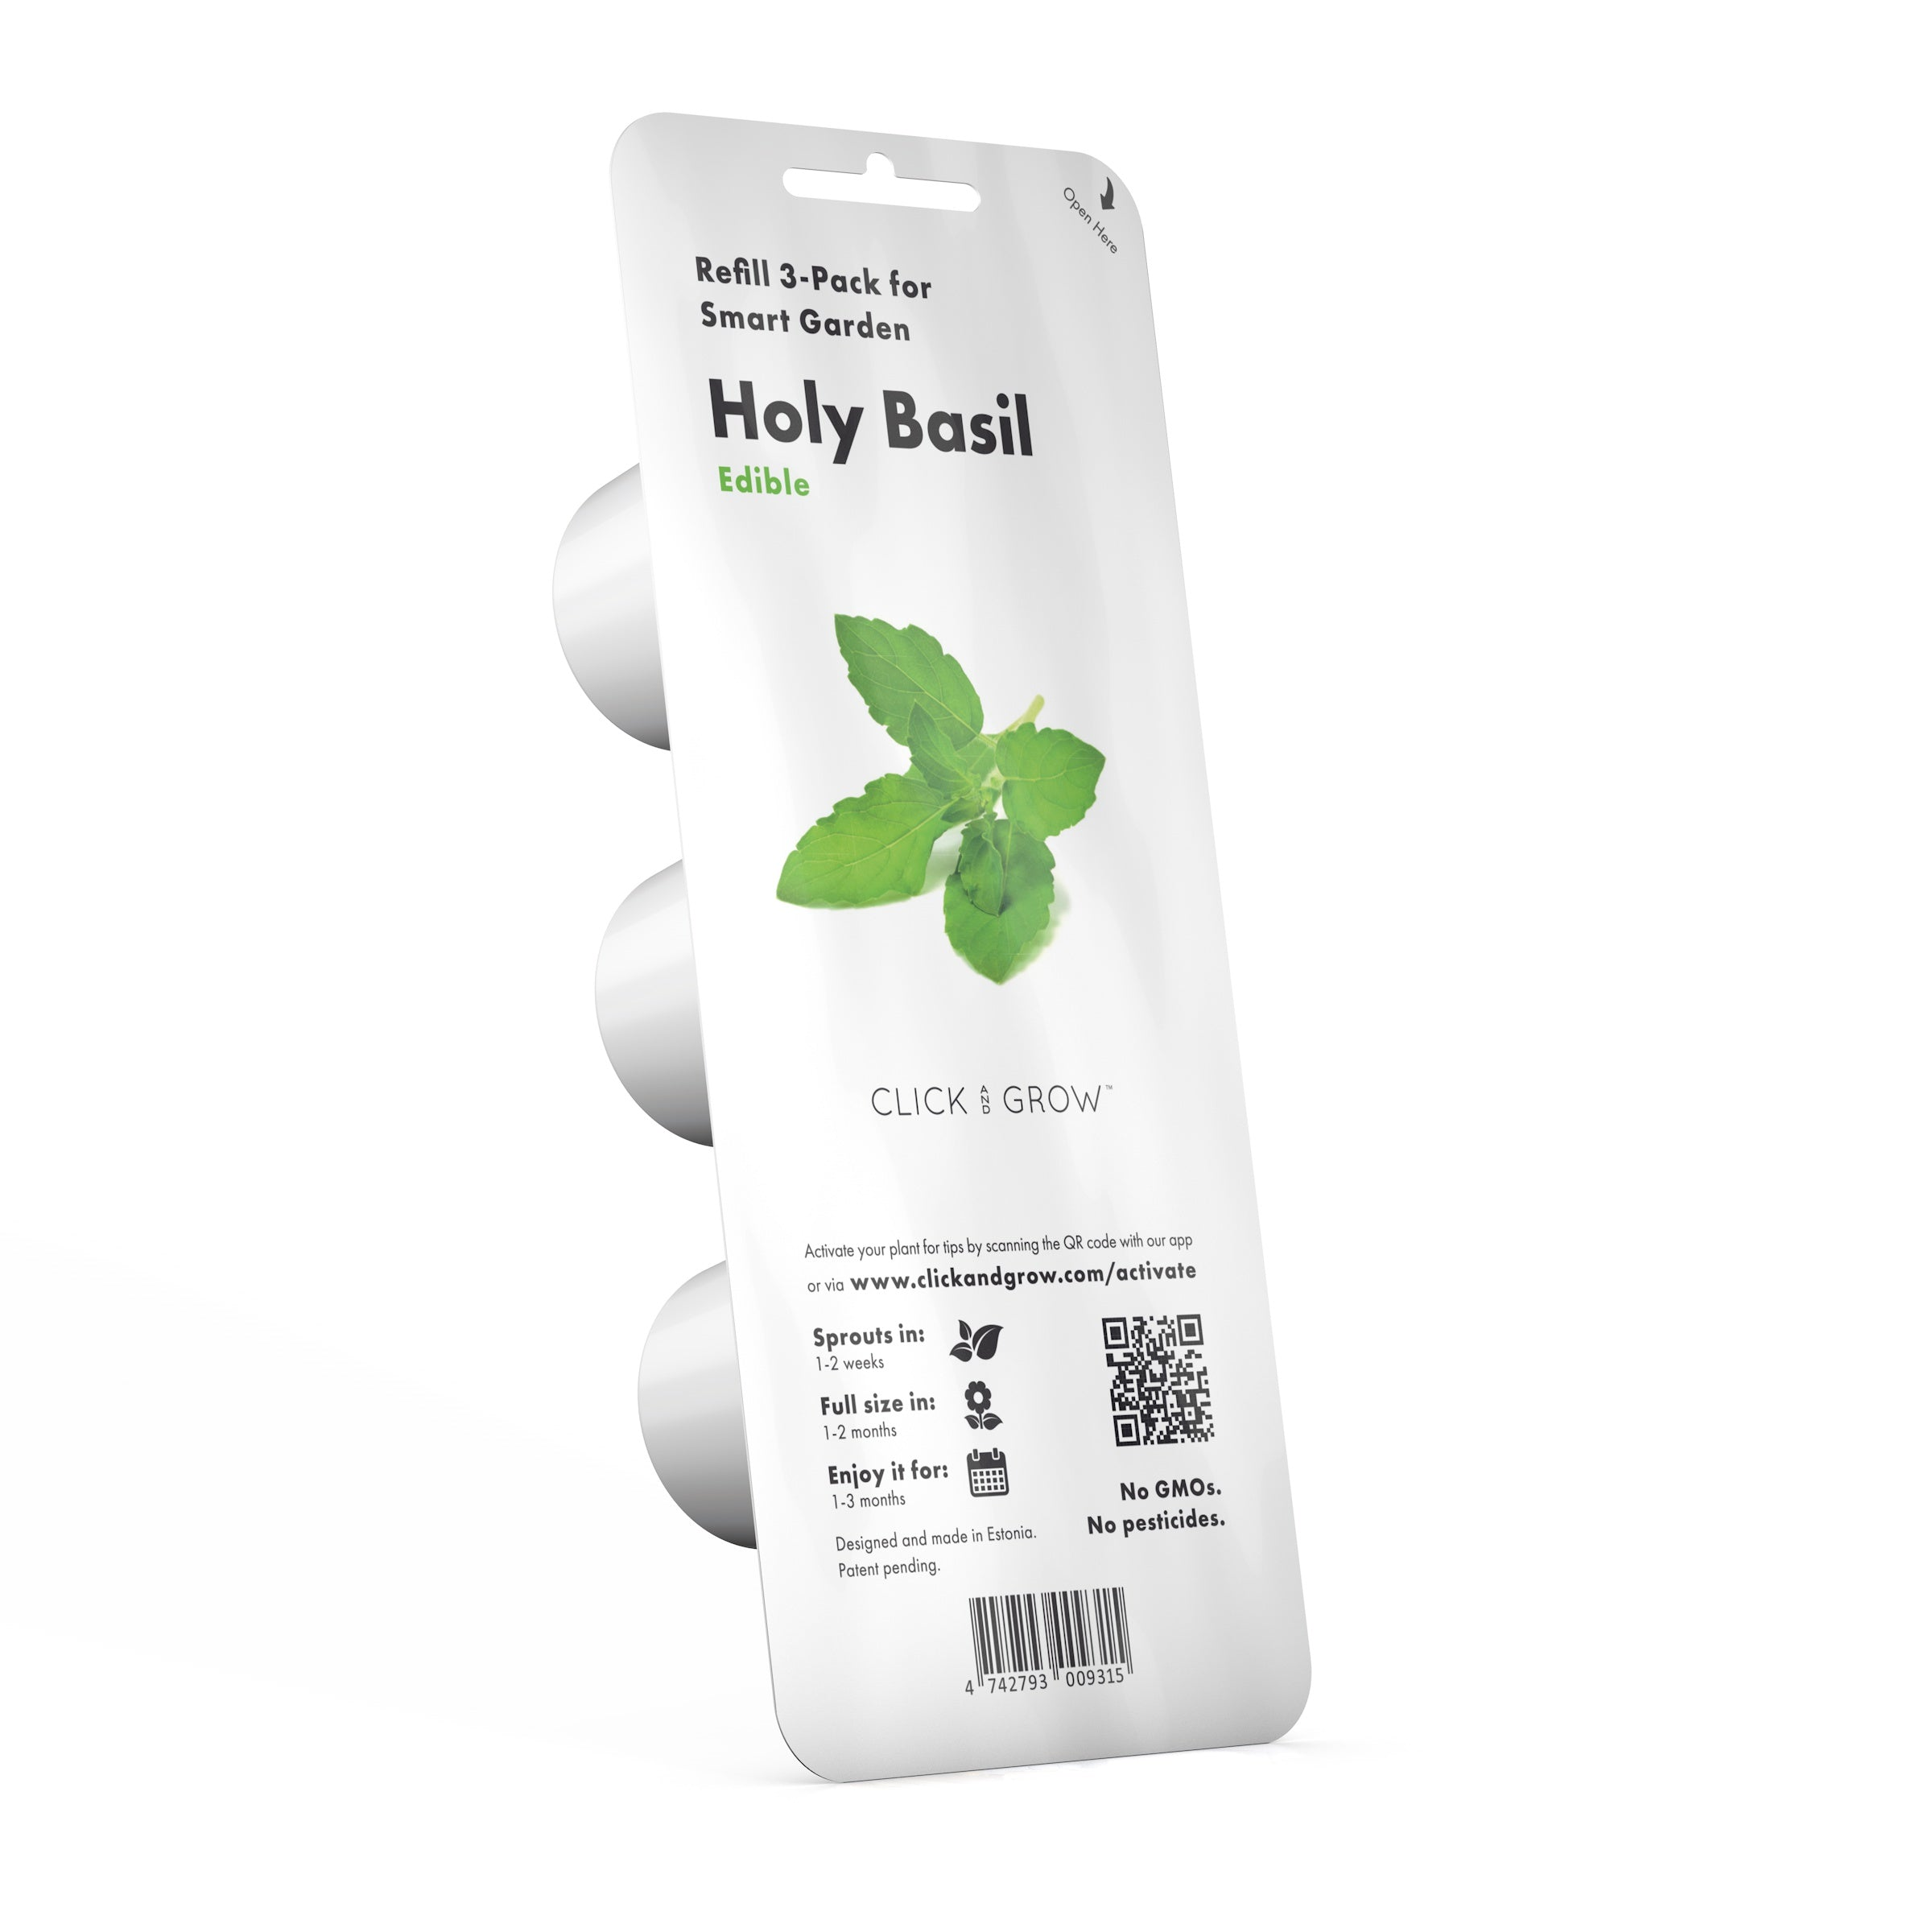 Grow Tulsi in an indoor garden. Holy basil grows fast in the Click & Grow indoor herb garden.